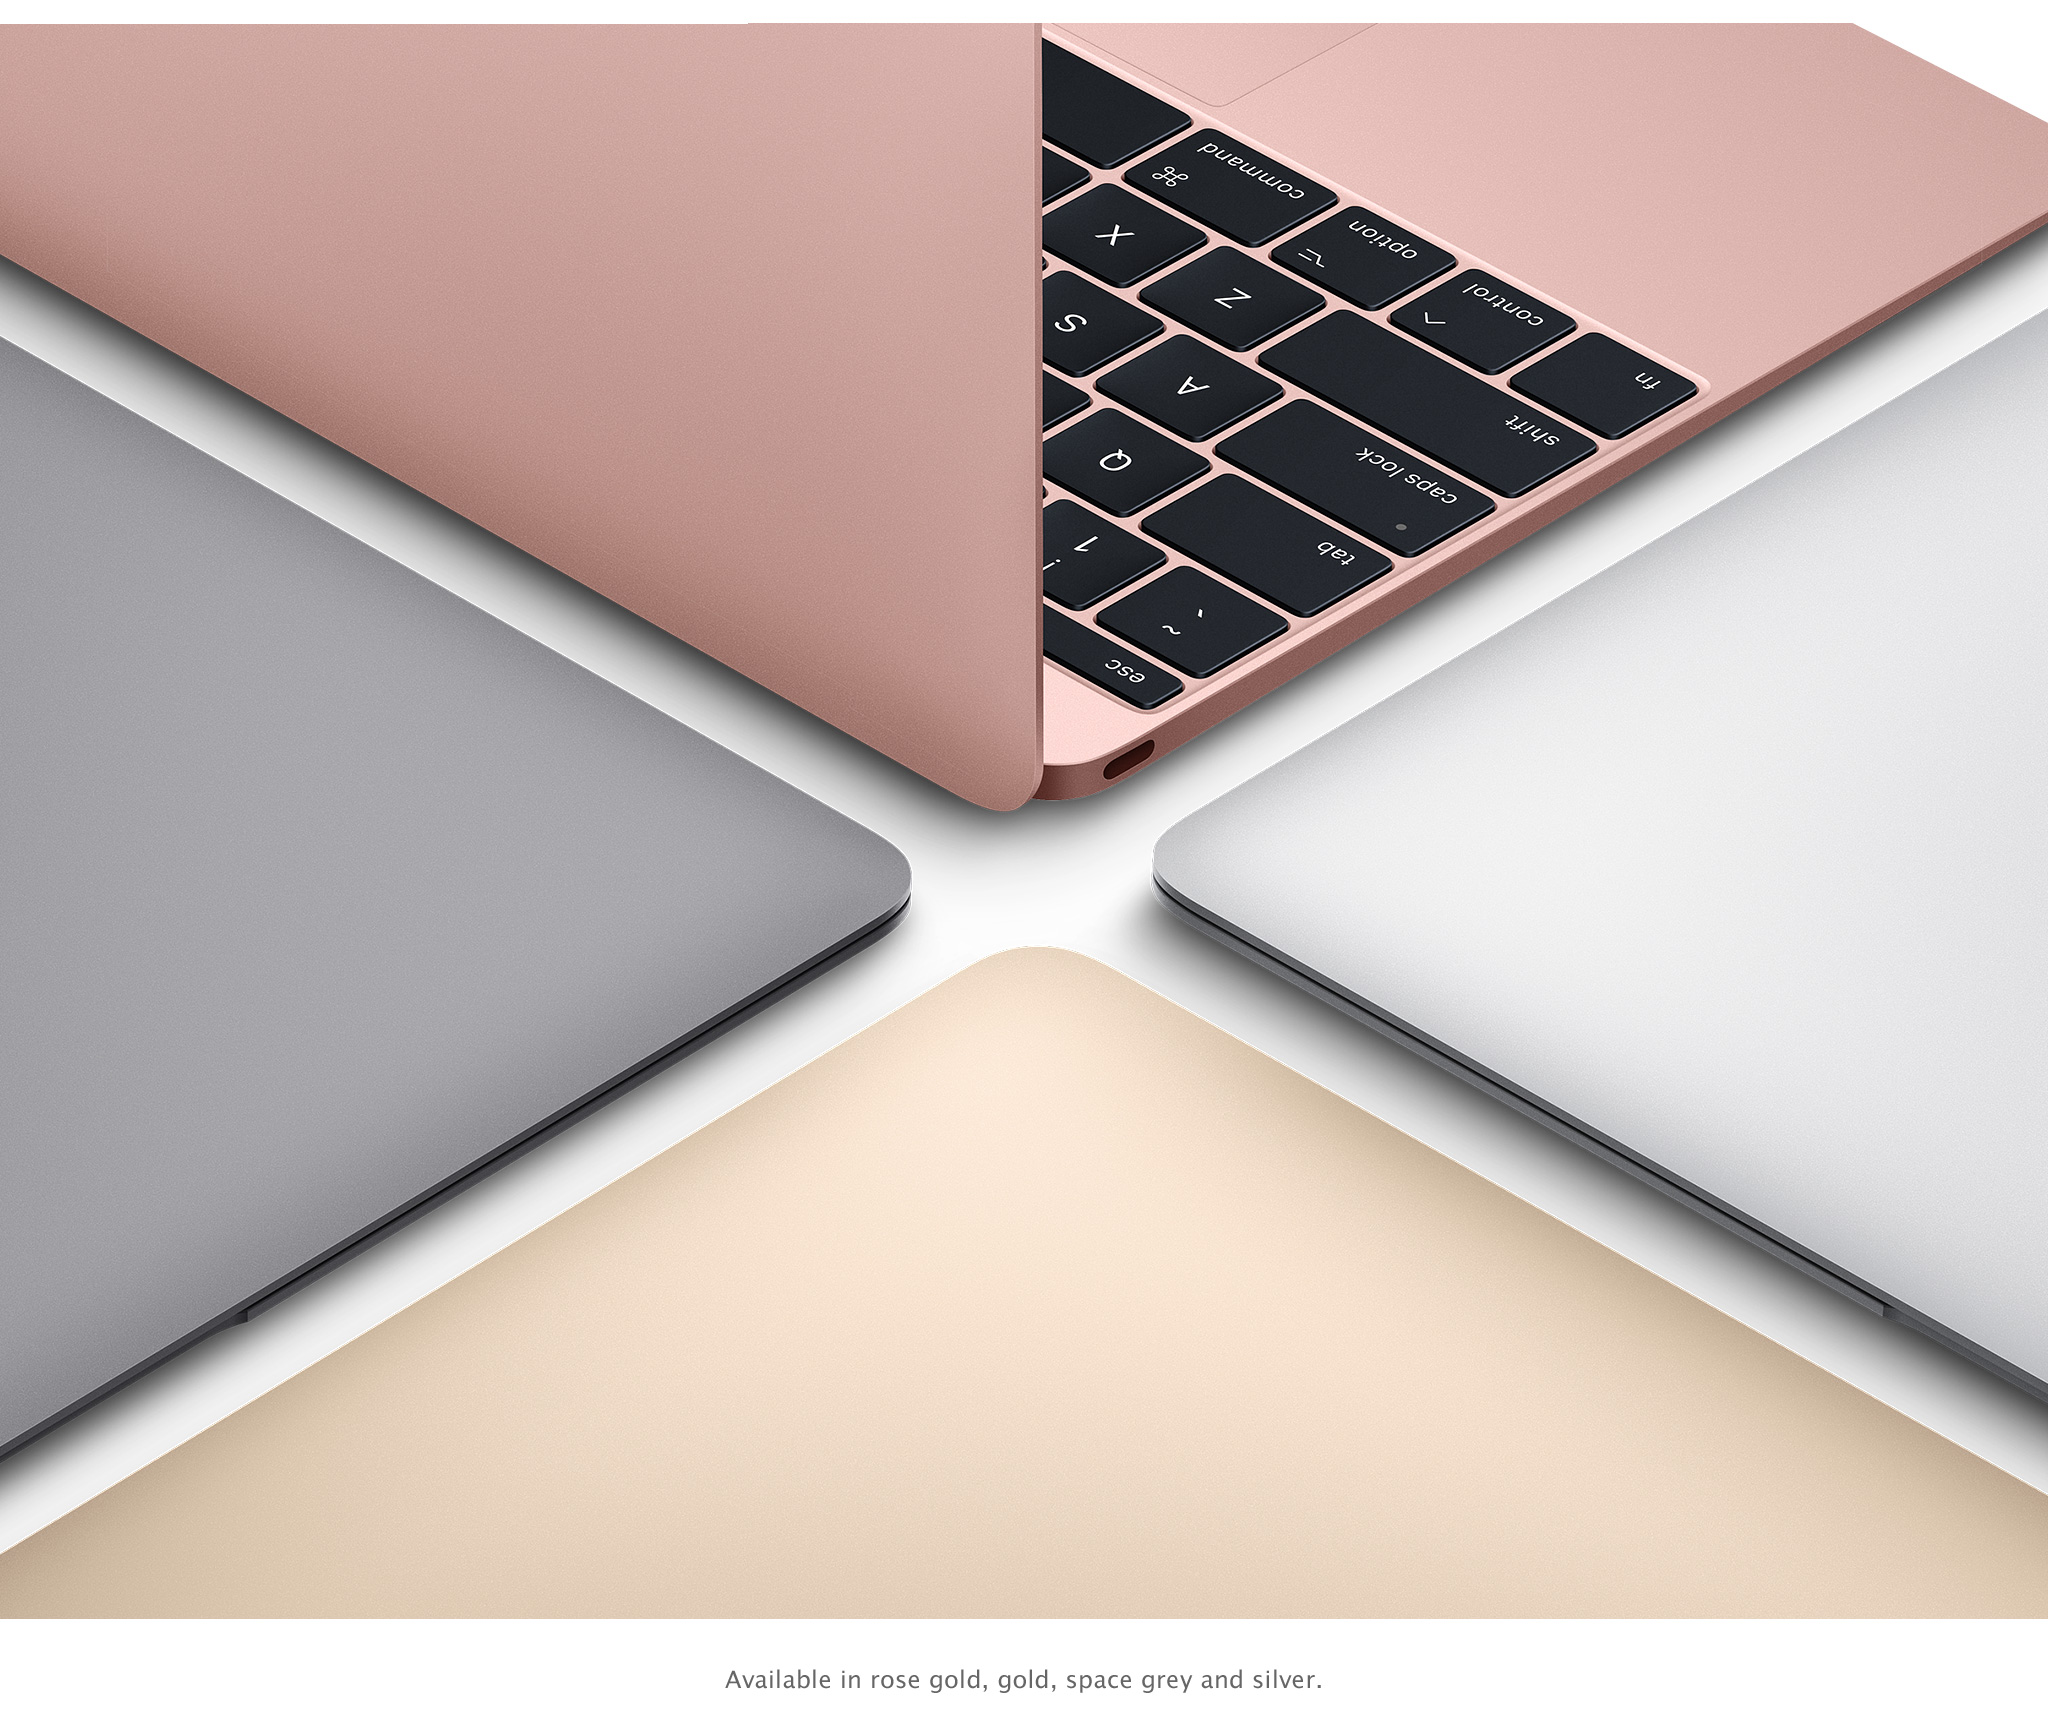 MacBook features